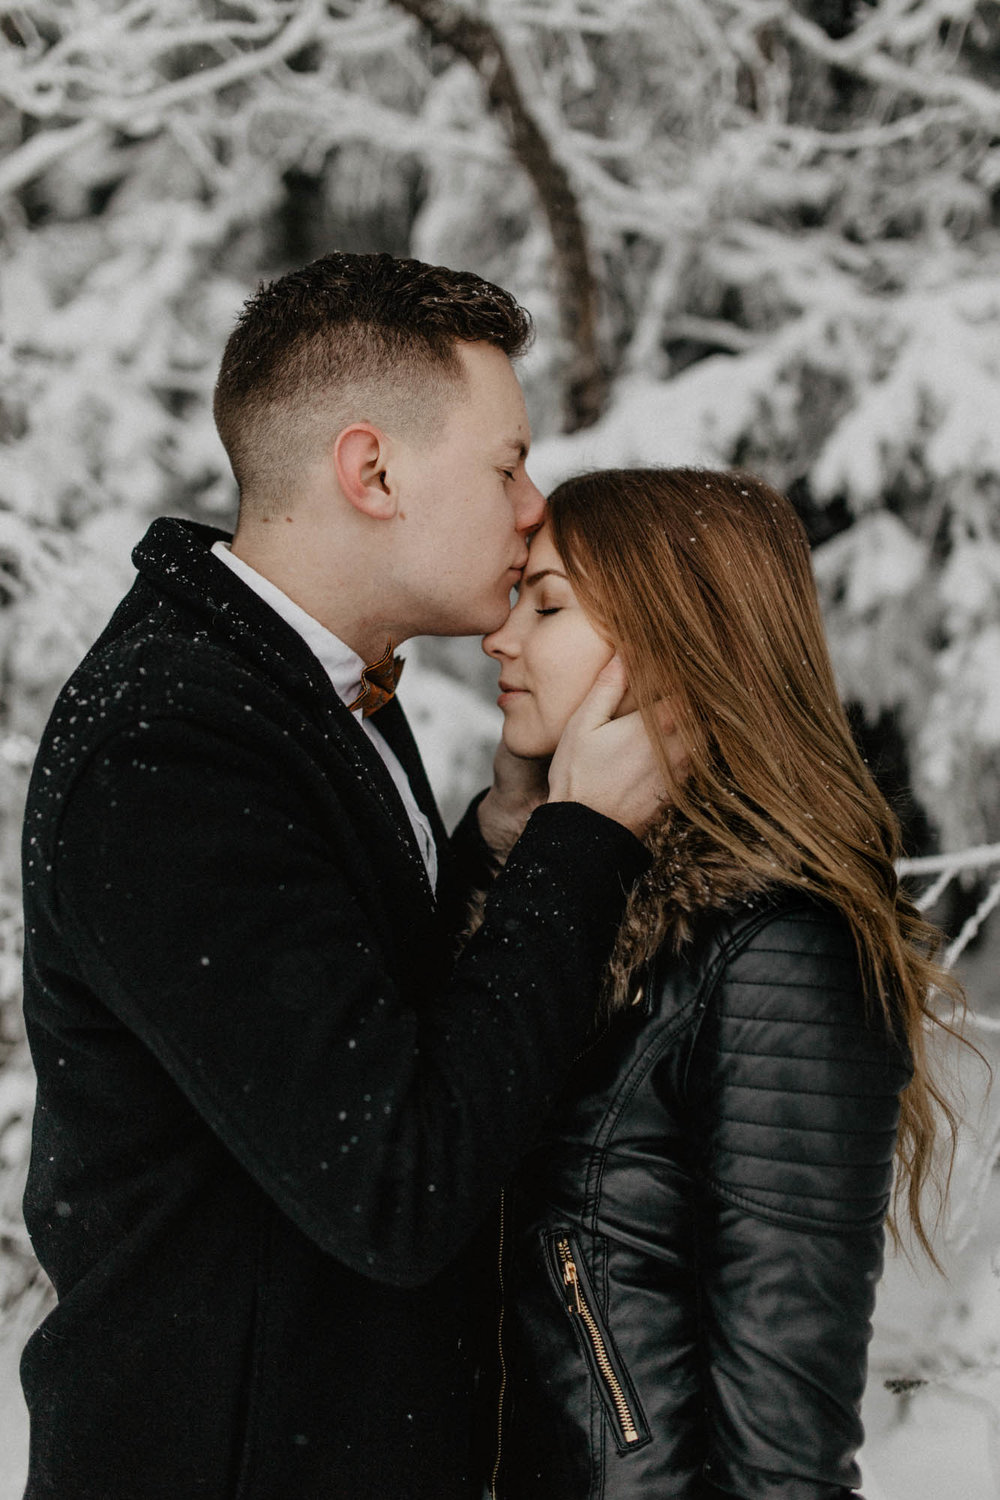 ashley_schulman_photography-winter_wedding_tampere-15.jpg